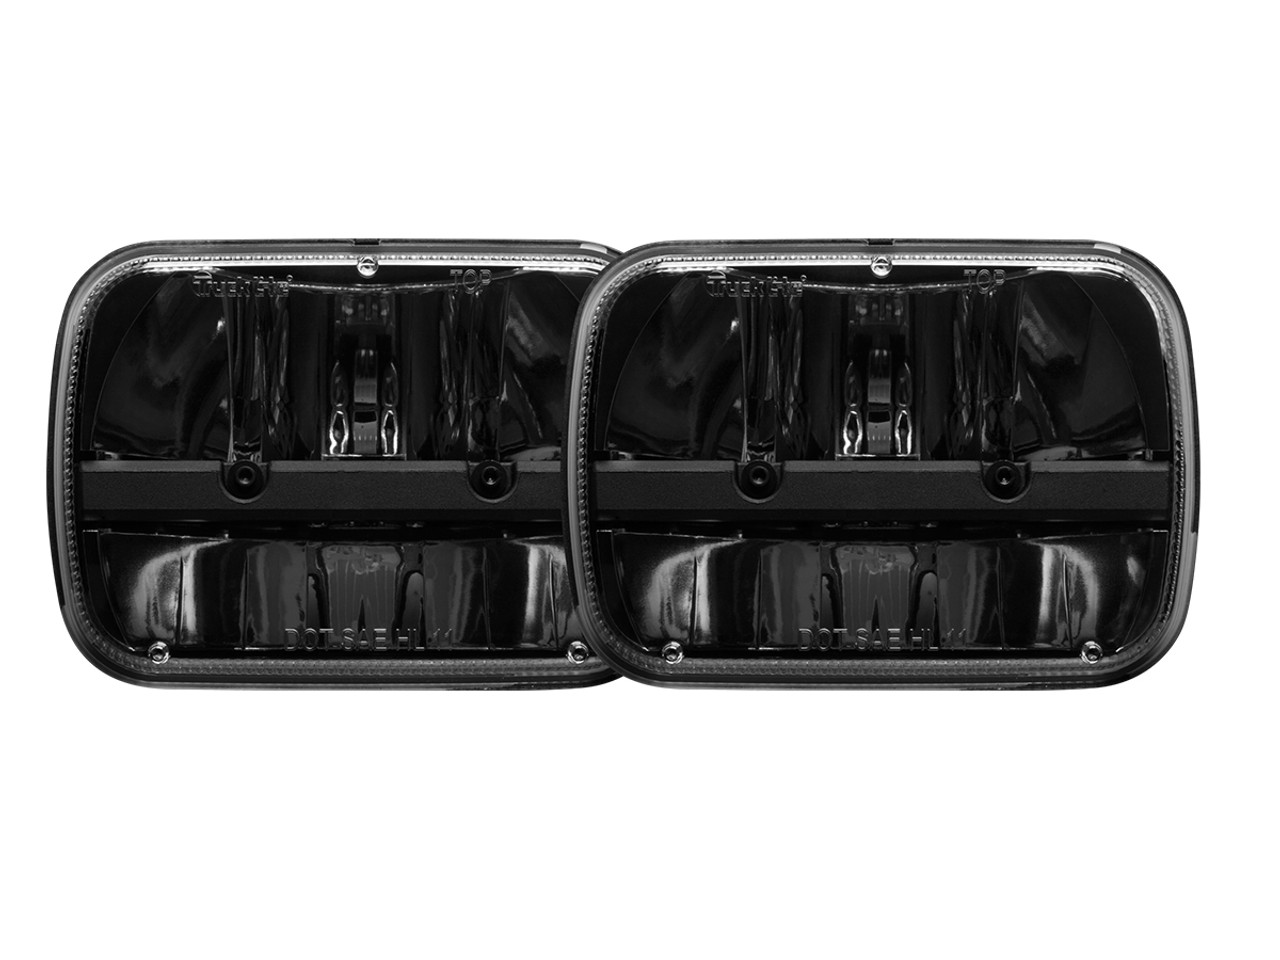 GGBAILEY D4559A-S2B-GY-LP Custom Fit Car Mats for 2005 Passenger /& Rear Floor 2006 2007 Chrysler Town and Country Grey Loop Driver